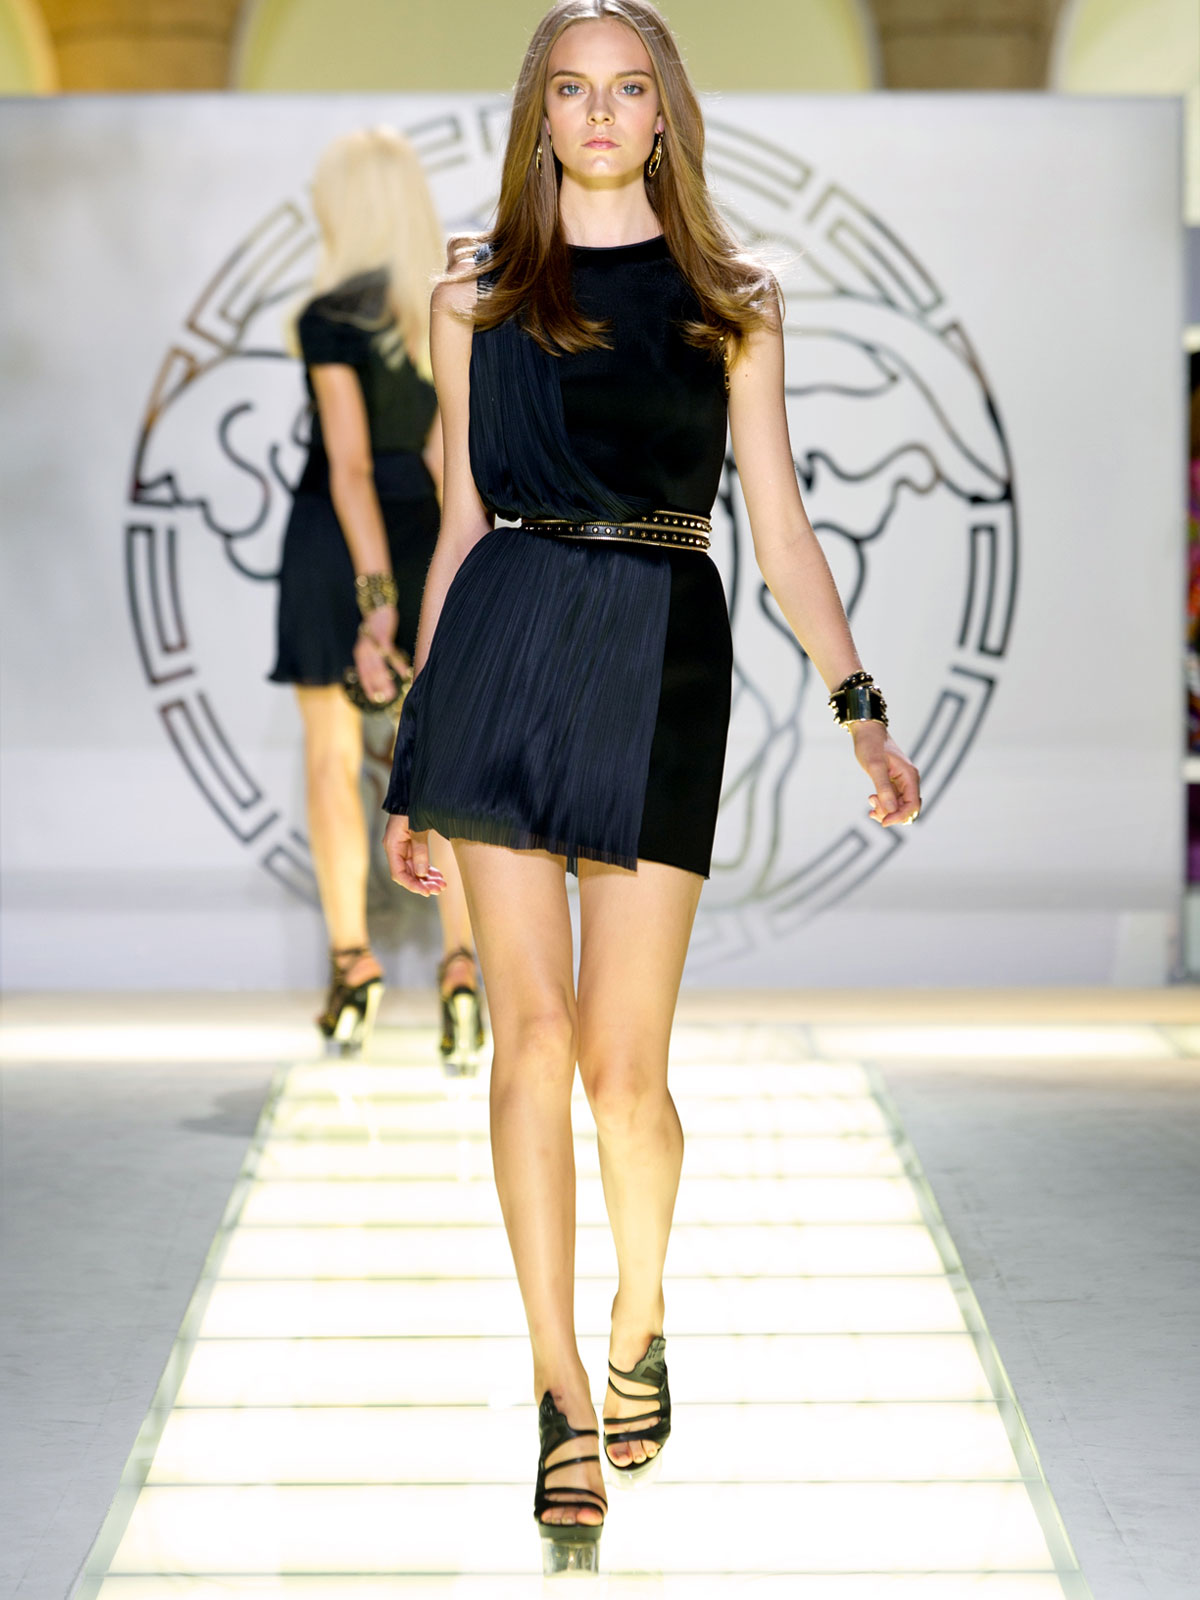 Runway fashion models dress